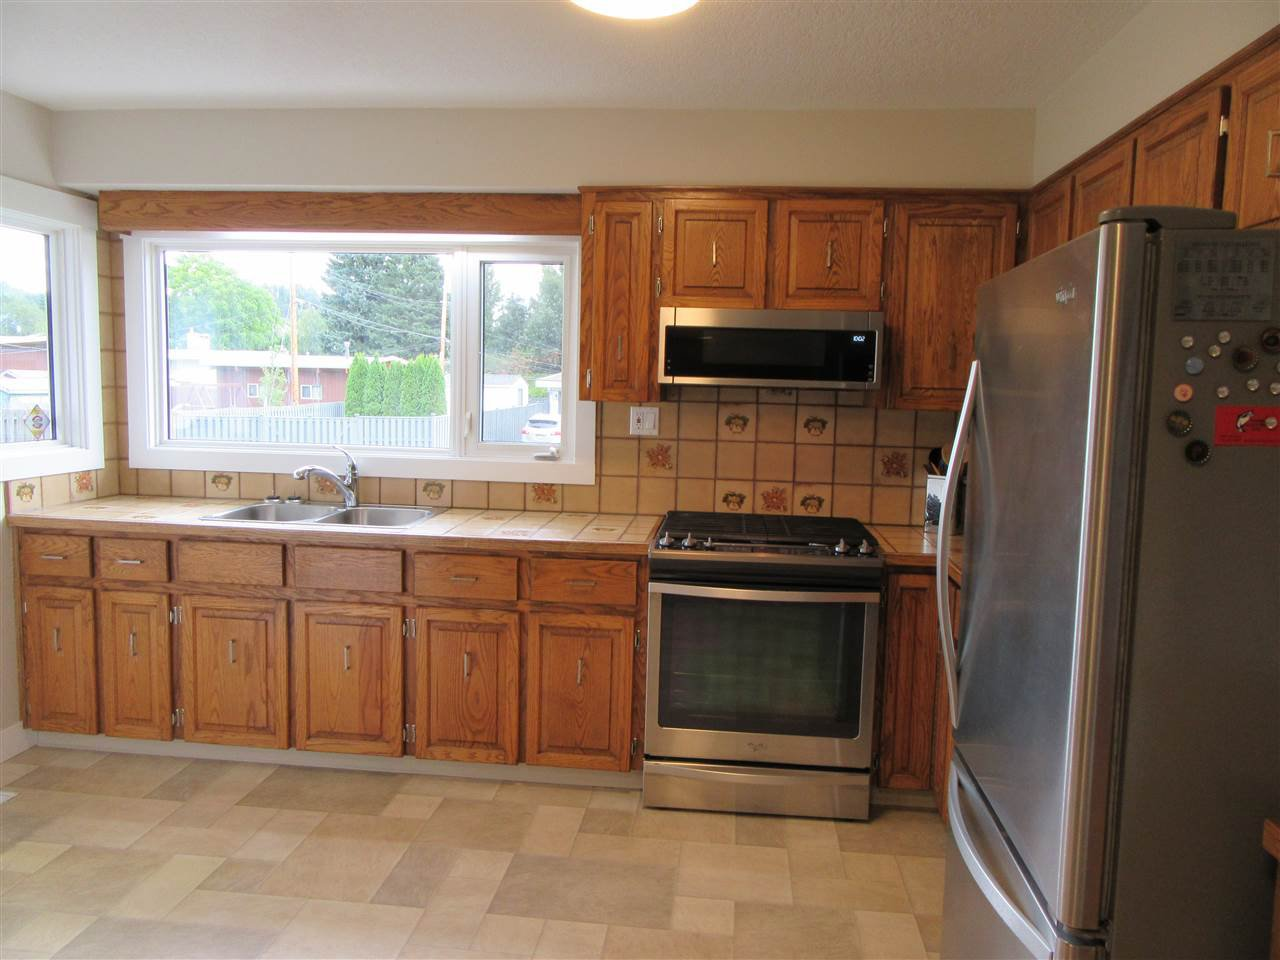 """Photo 25: Photos: 121 FREEMAN Street in Prince George: Nechako View House for sale in """"NECHAKO"""" (PG City Central (Zone 72))  : MLS®# R2493268"""